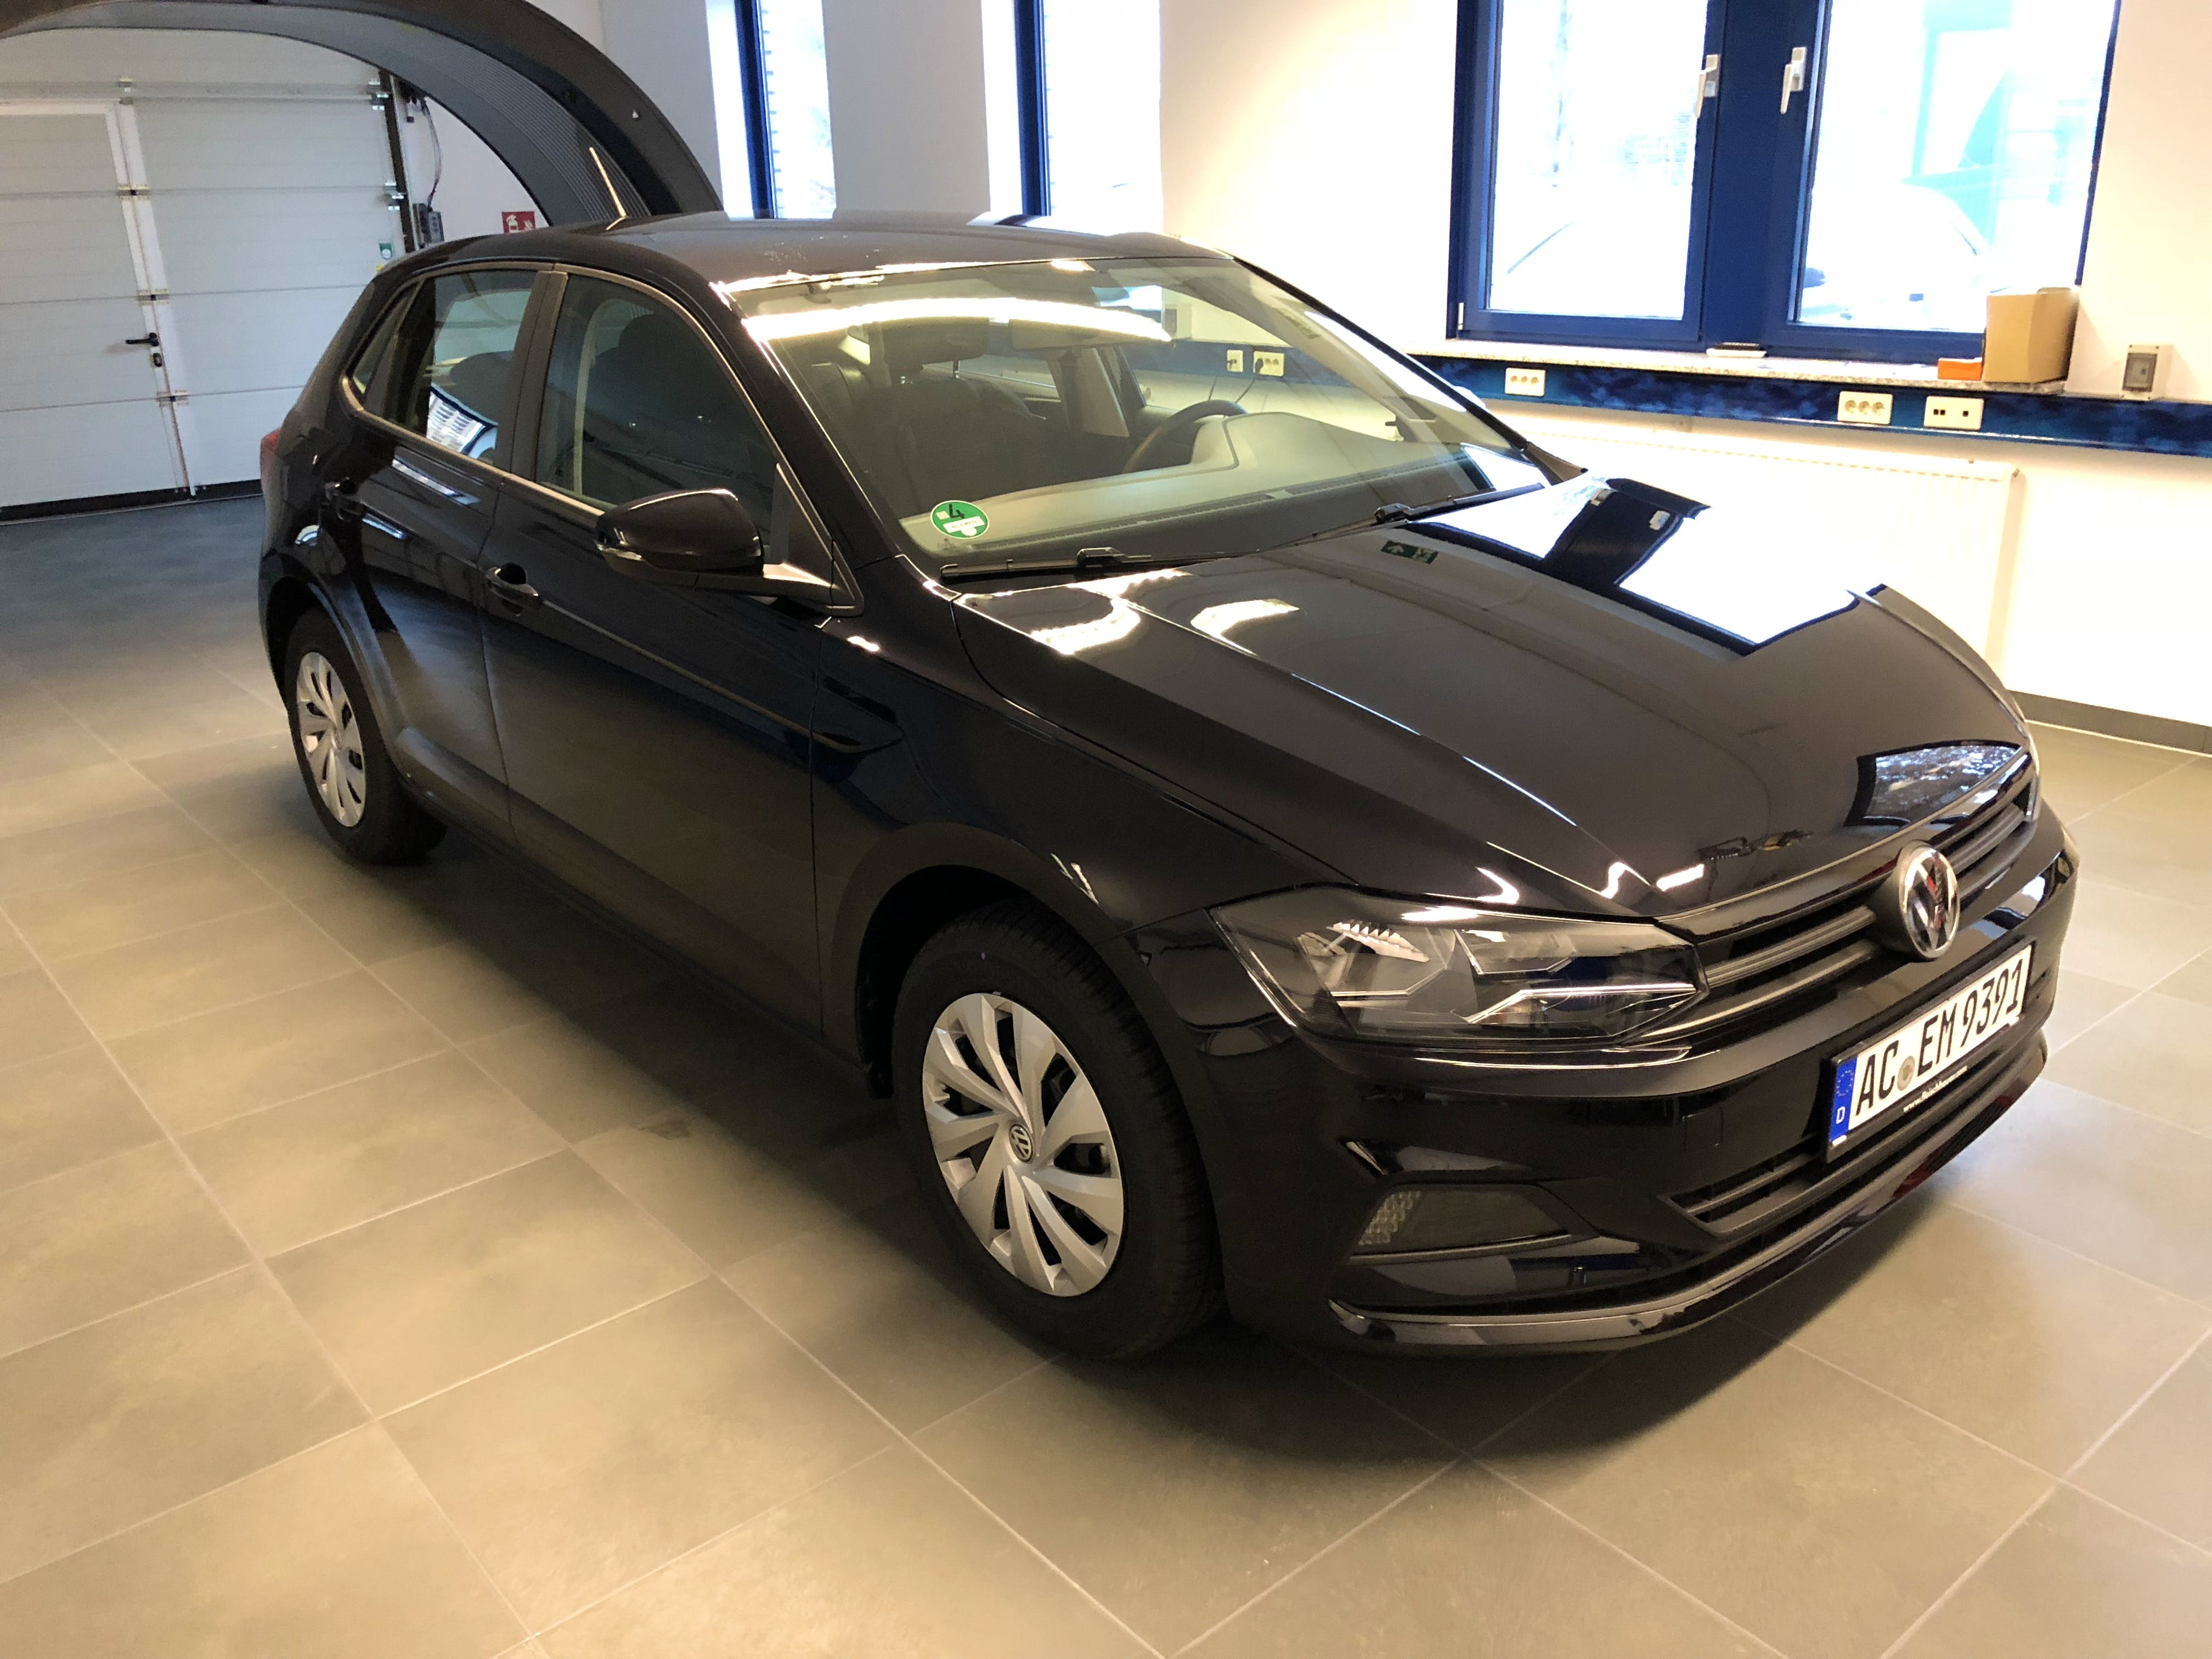 Volkswagen Polo mit Audio-/iPod-Zugang